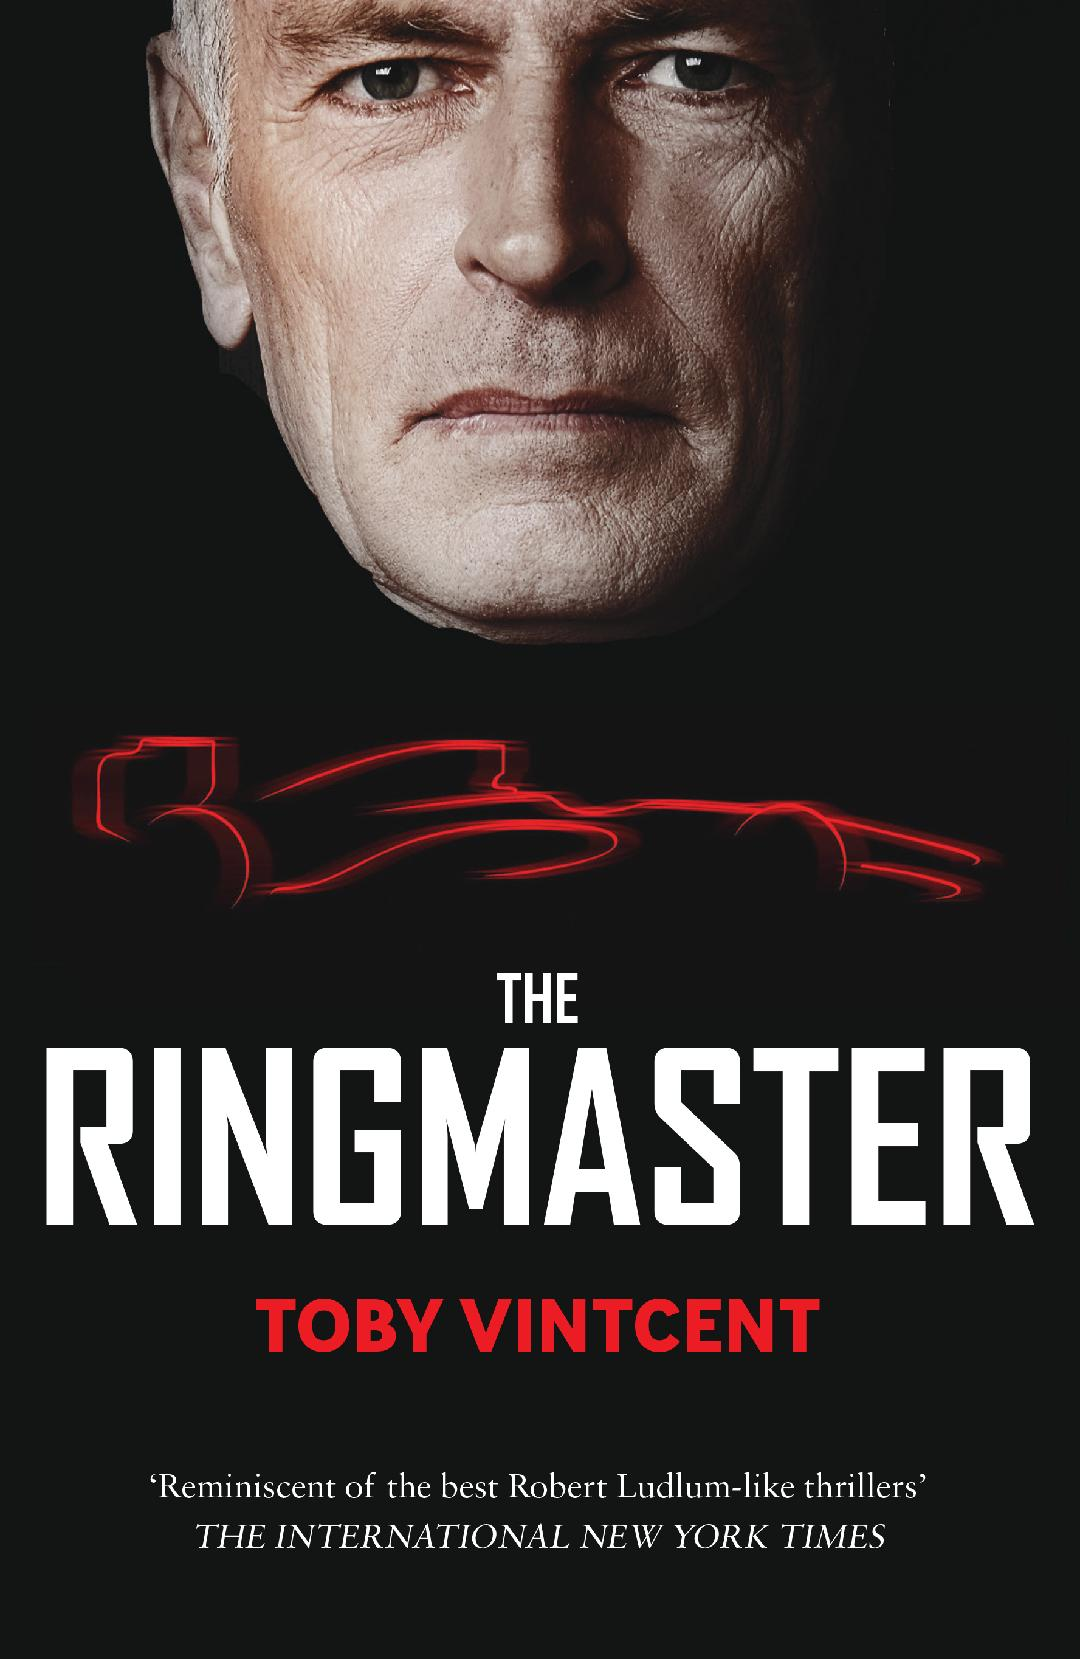 The Ringmaster by Toby Vintcent: extract